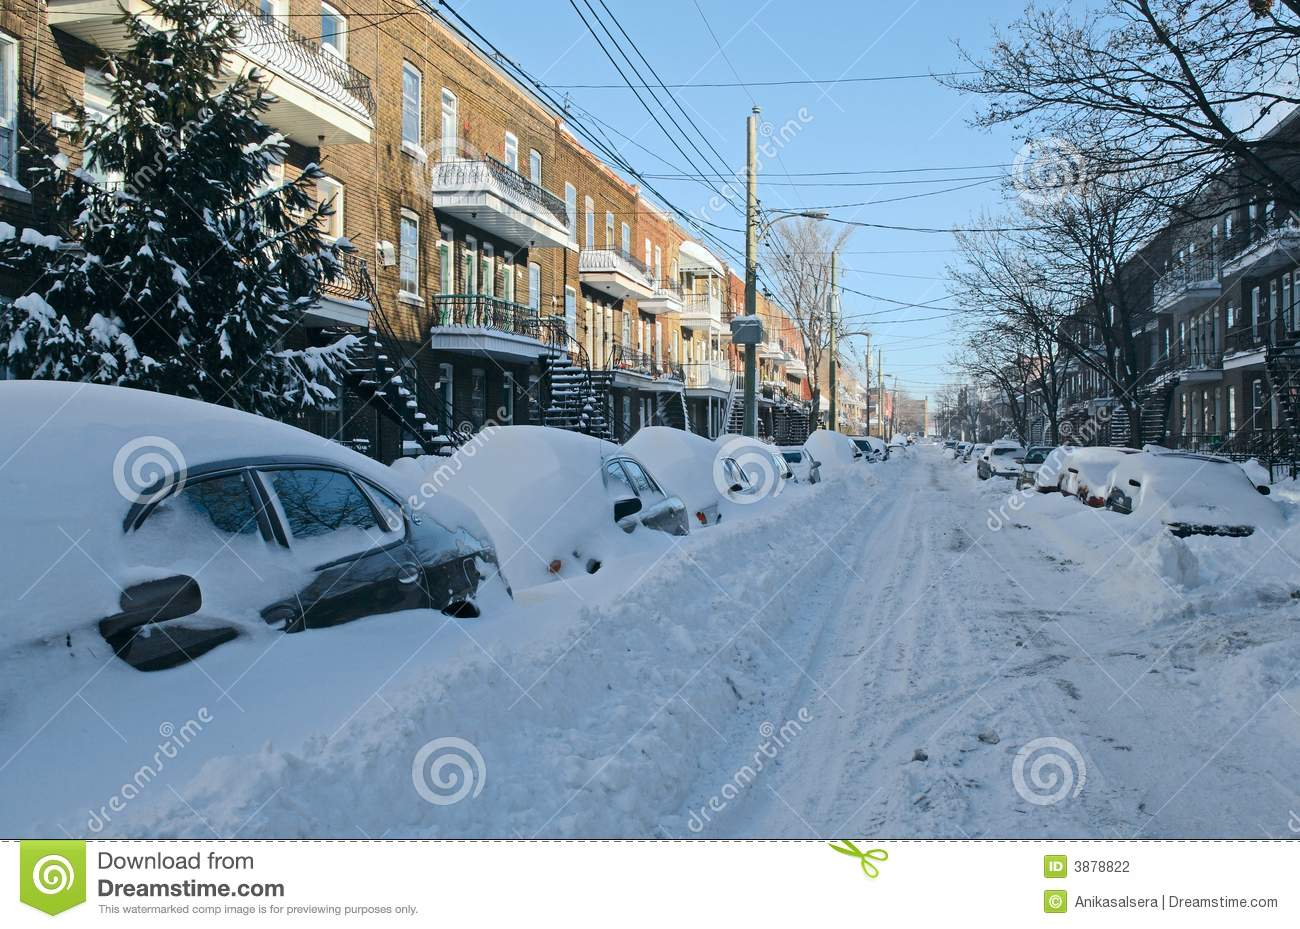 Car Covered In Snow : Cars covered by snow on the street stock photo image